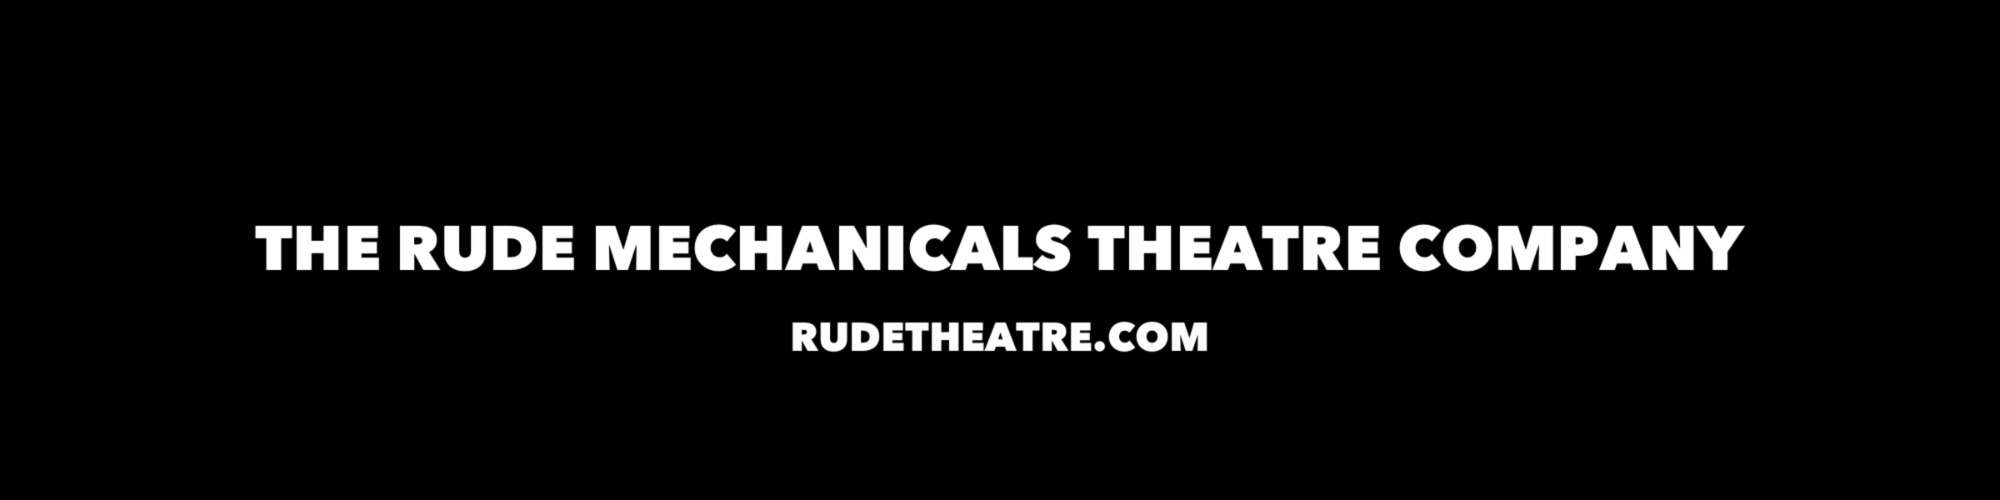 Showroom - The Rude Mechanicals Theatre Company